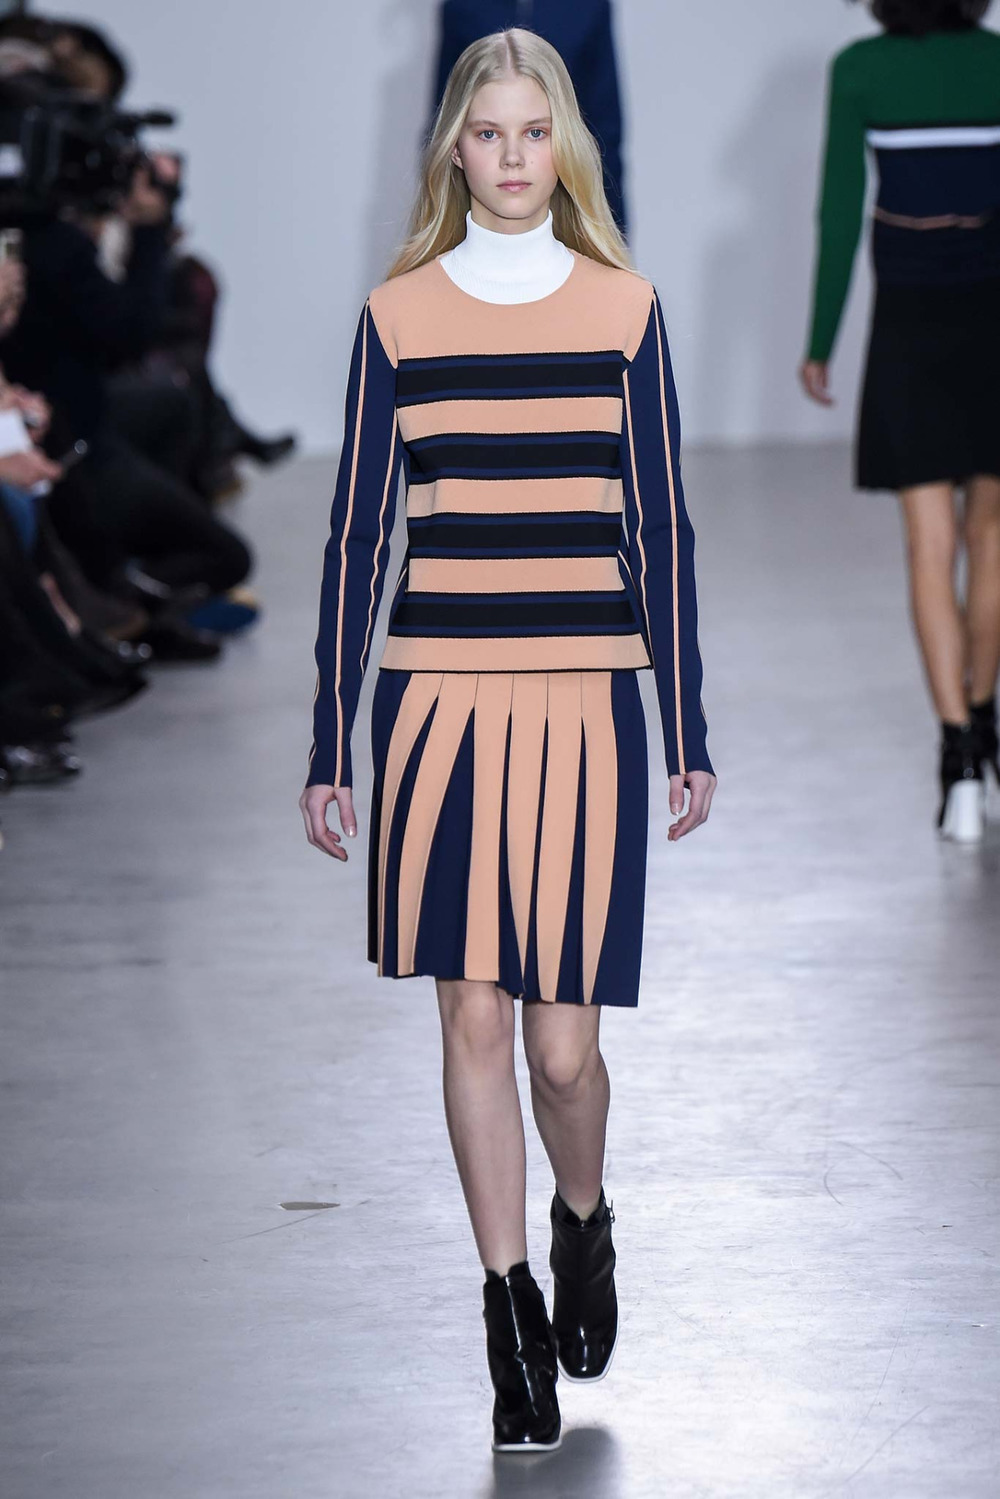 Cedric Charlier brings vibrant hues with sporty shapes to the Fall/Winter 2015 runway during Paris Fashion Week http://stylem.ag/1M99Q7Y